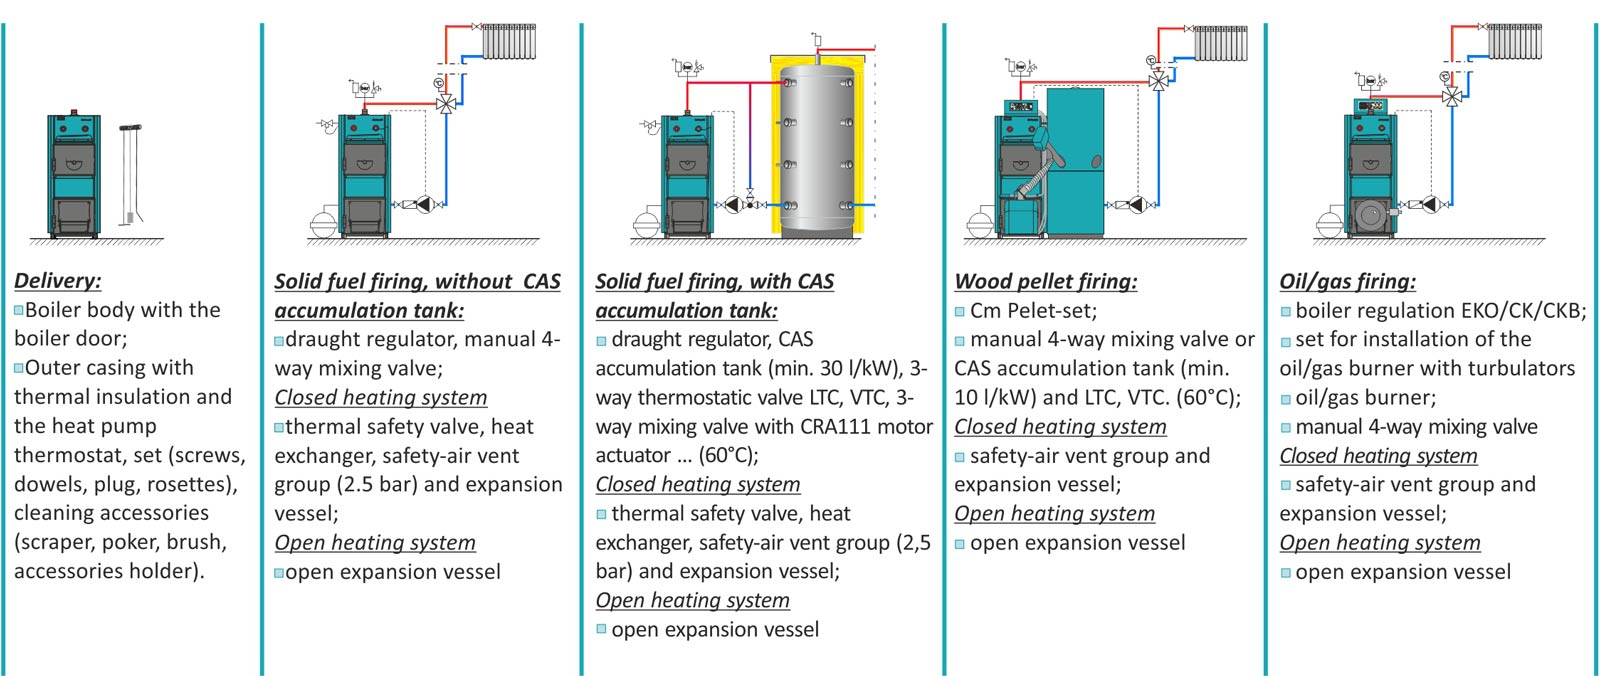 Eko Ck P 14110 Kw Centrometal Heating Technique Pressure Washer Burner Wiring Diagram Delivery Obligatory And Optional Additional Equipment